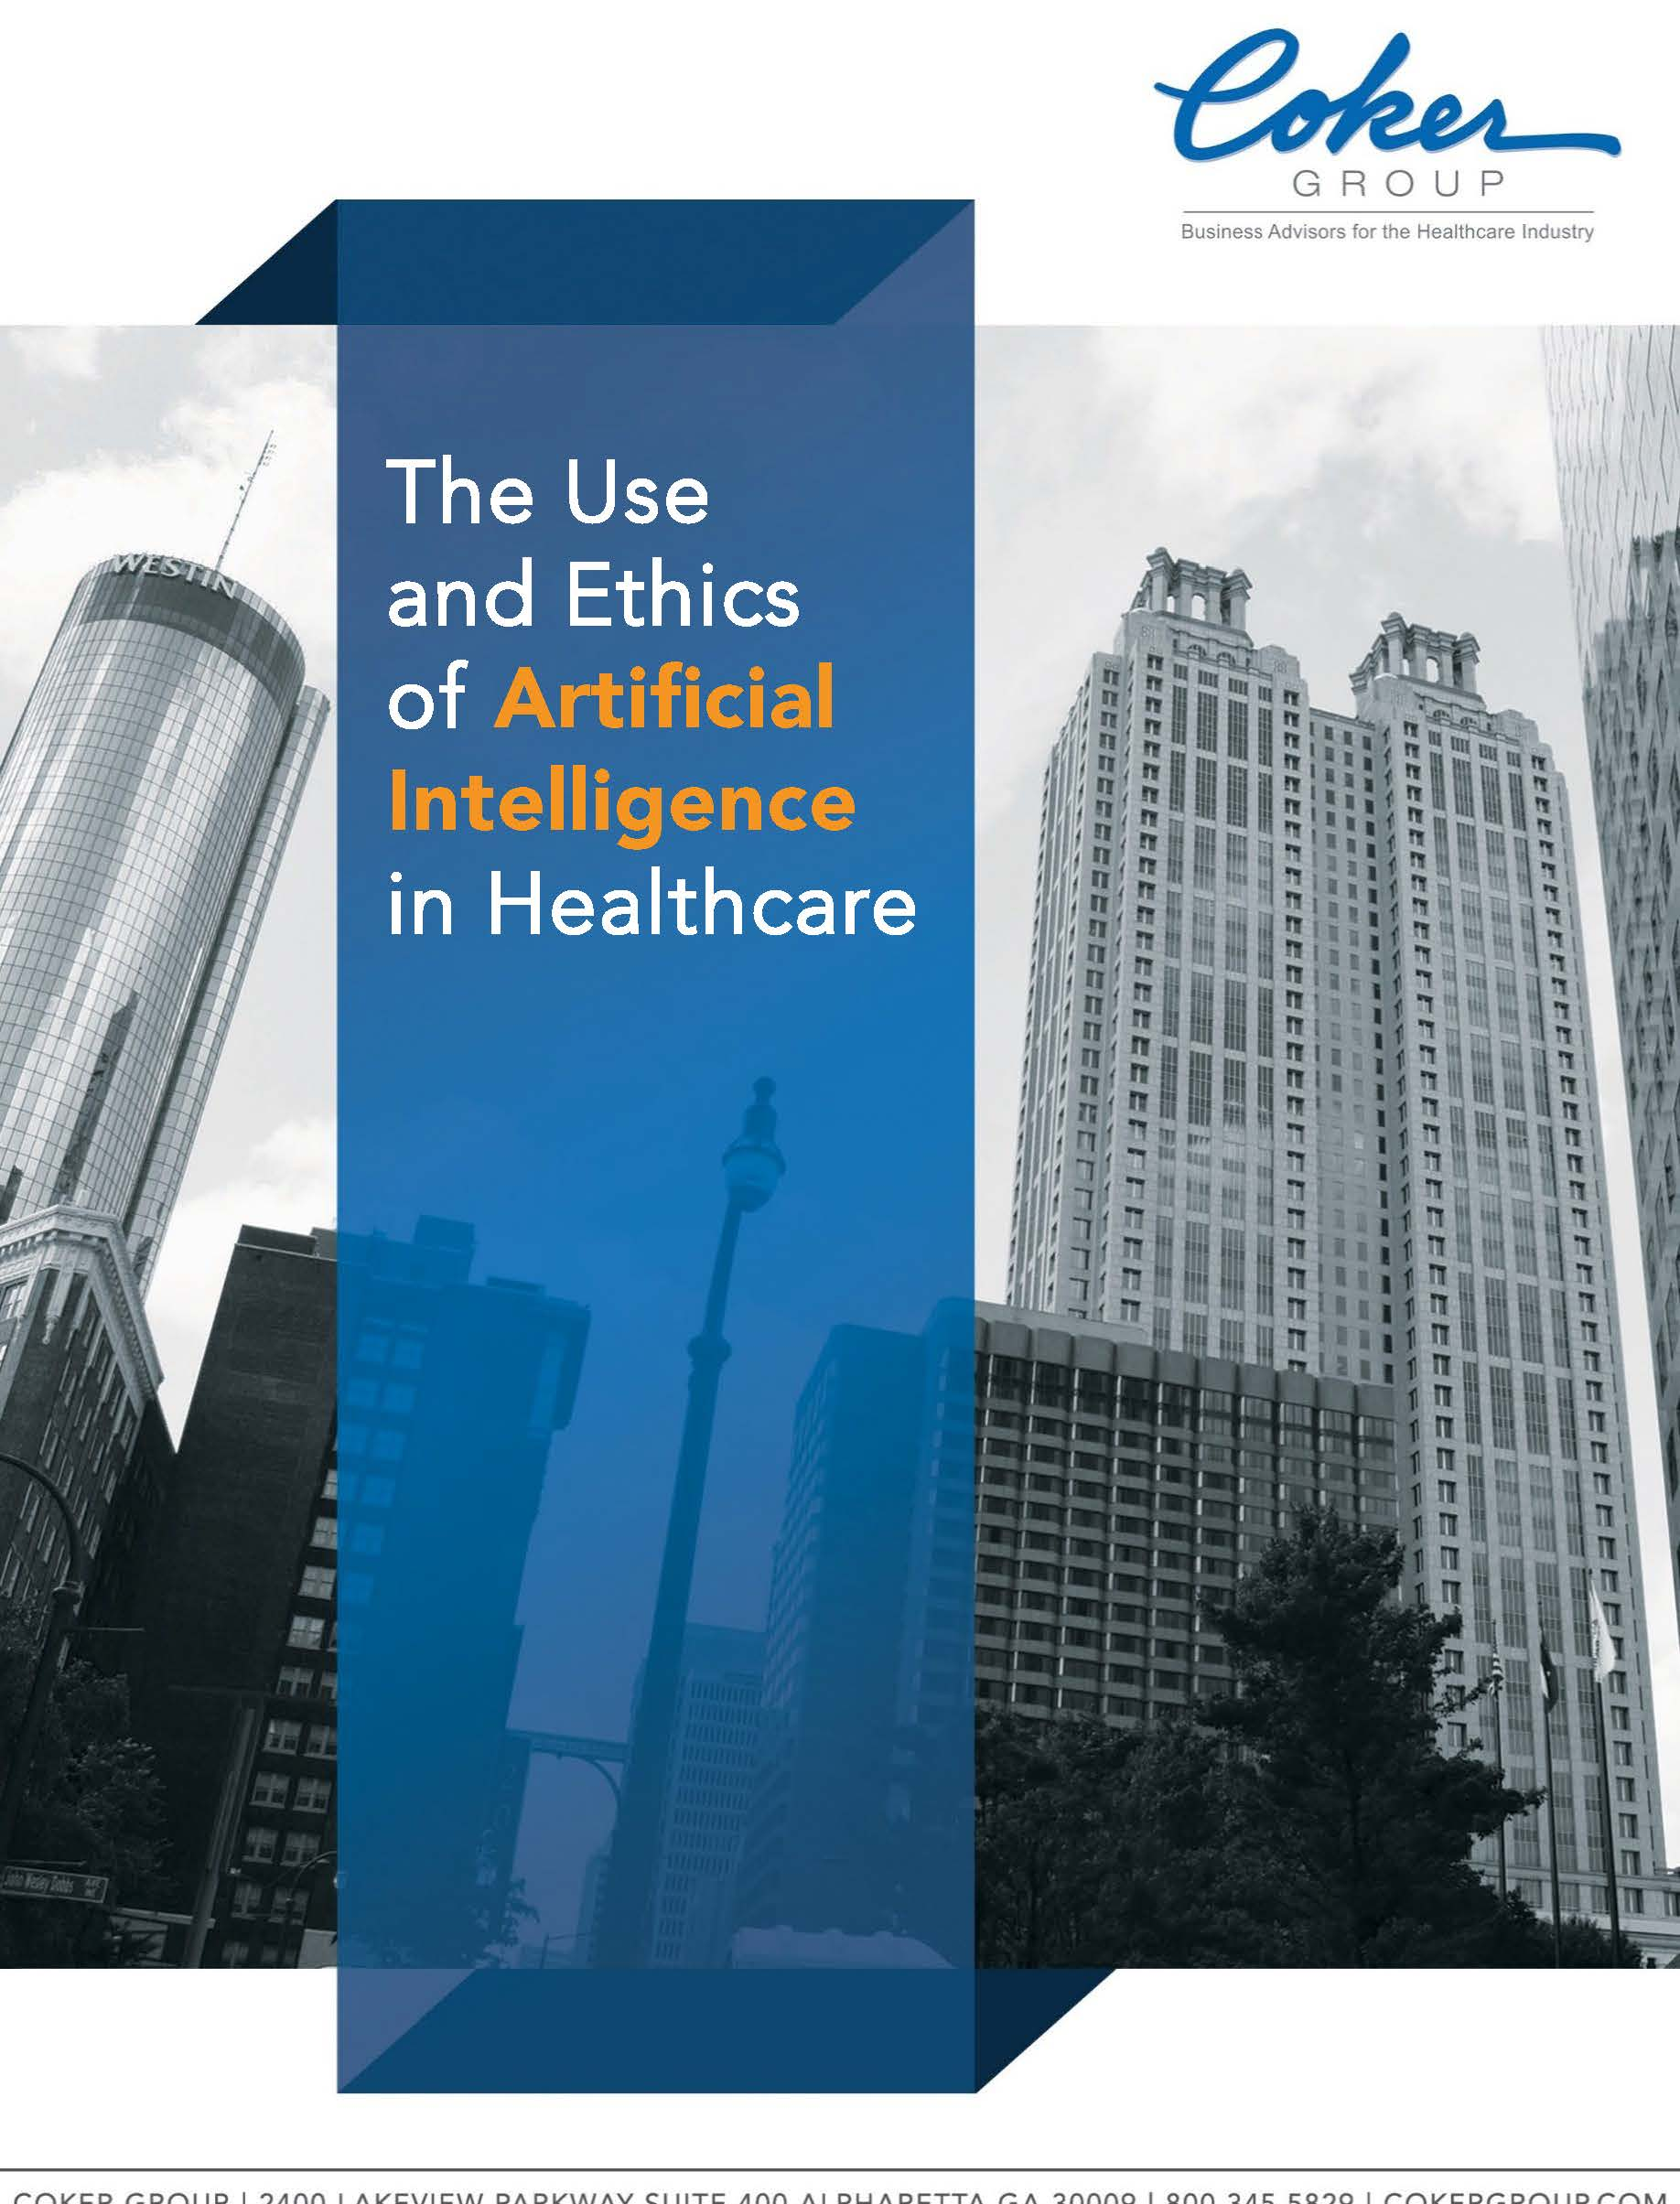 The Use and Ethics of Artificial Intelligence in Healthcare